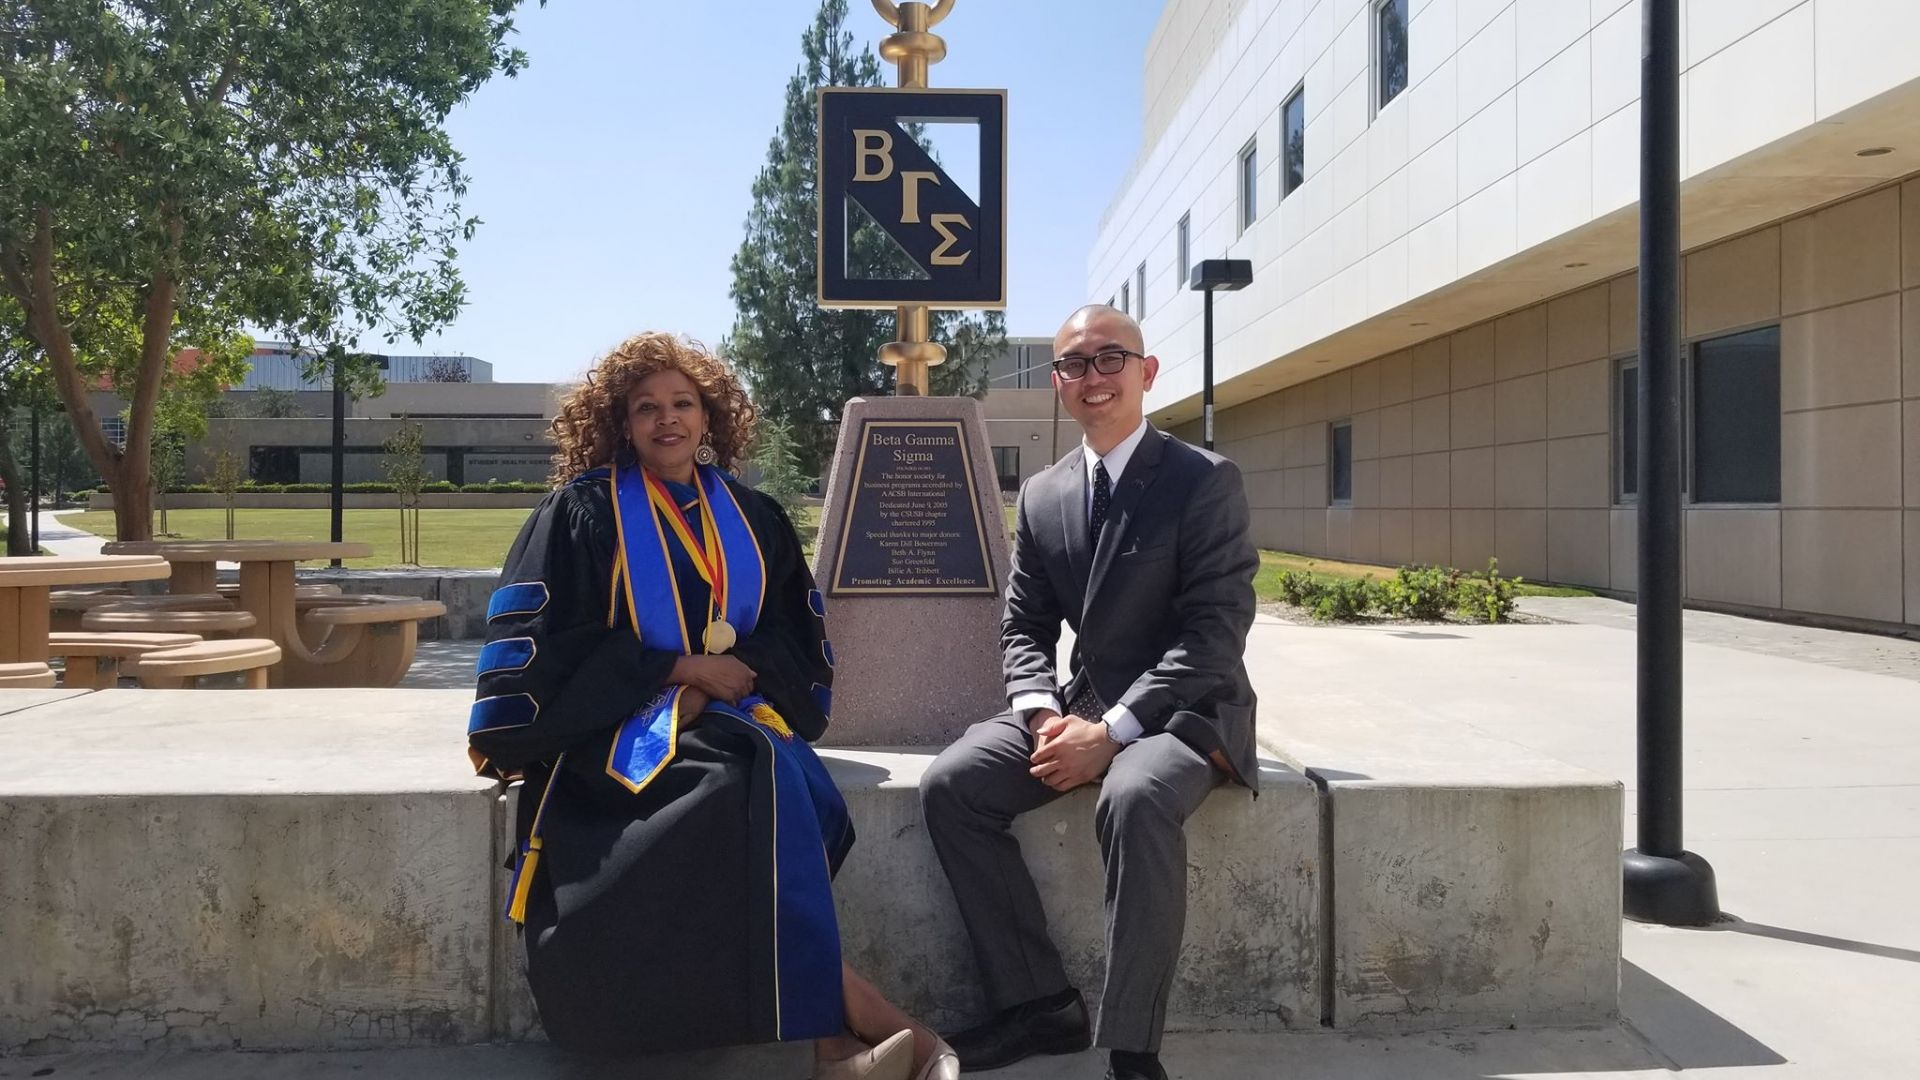 CSUSB's chapter of the Beta Gamma Sigma international business honor society joined the first-ever, society-wide BGS virtual recognition ceremony.